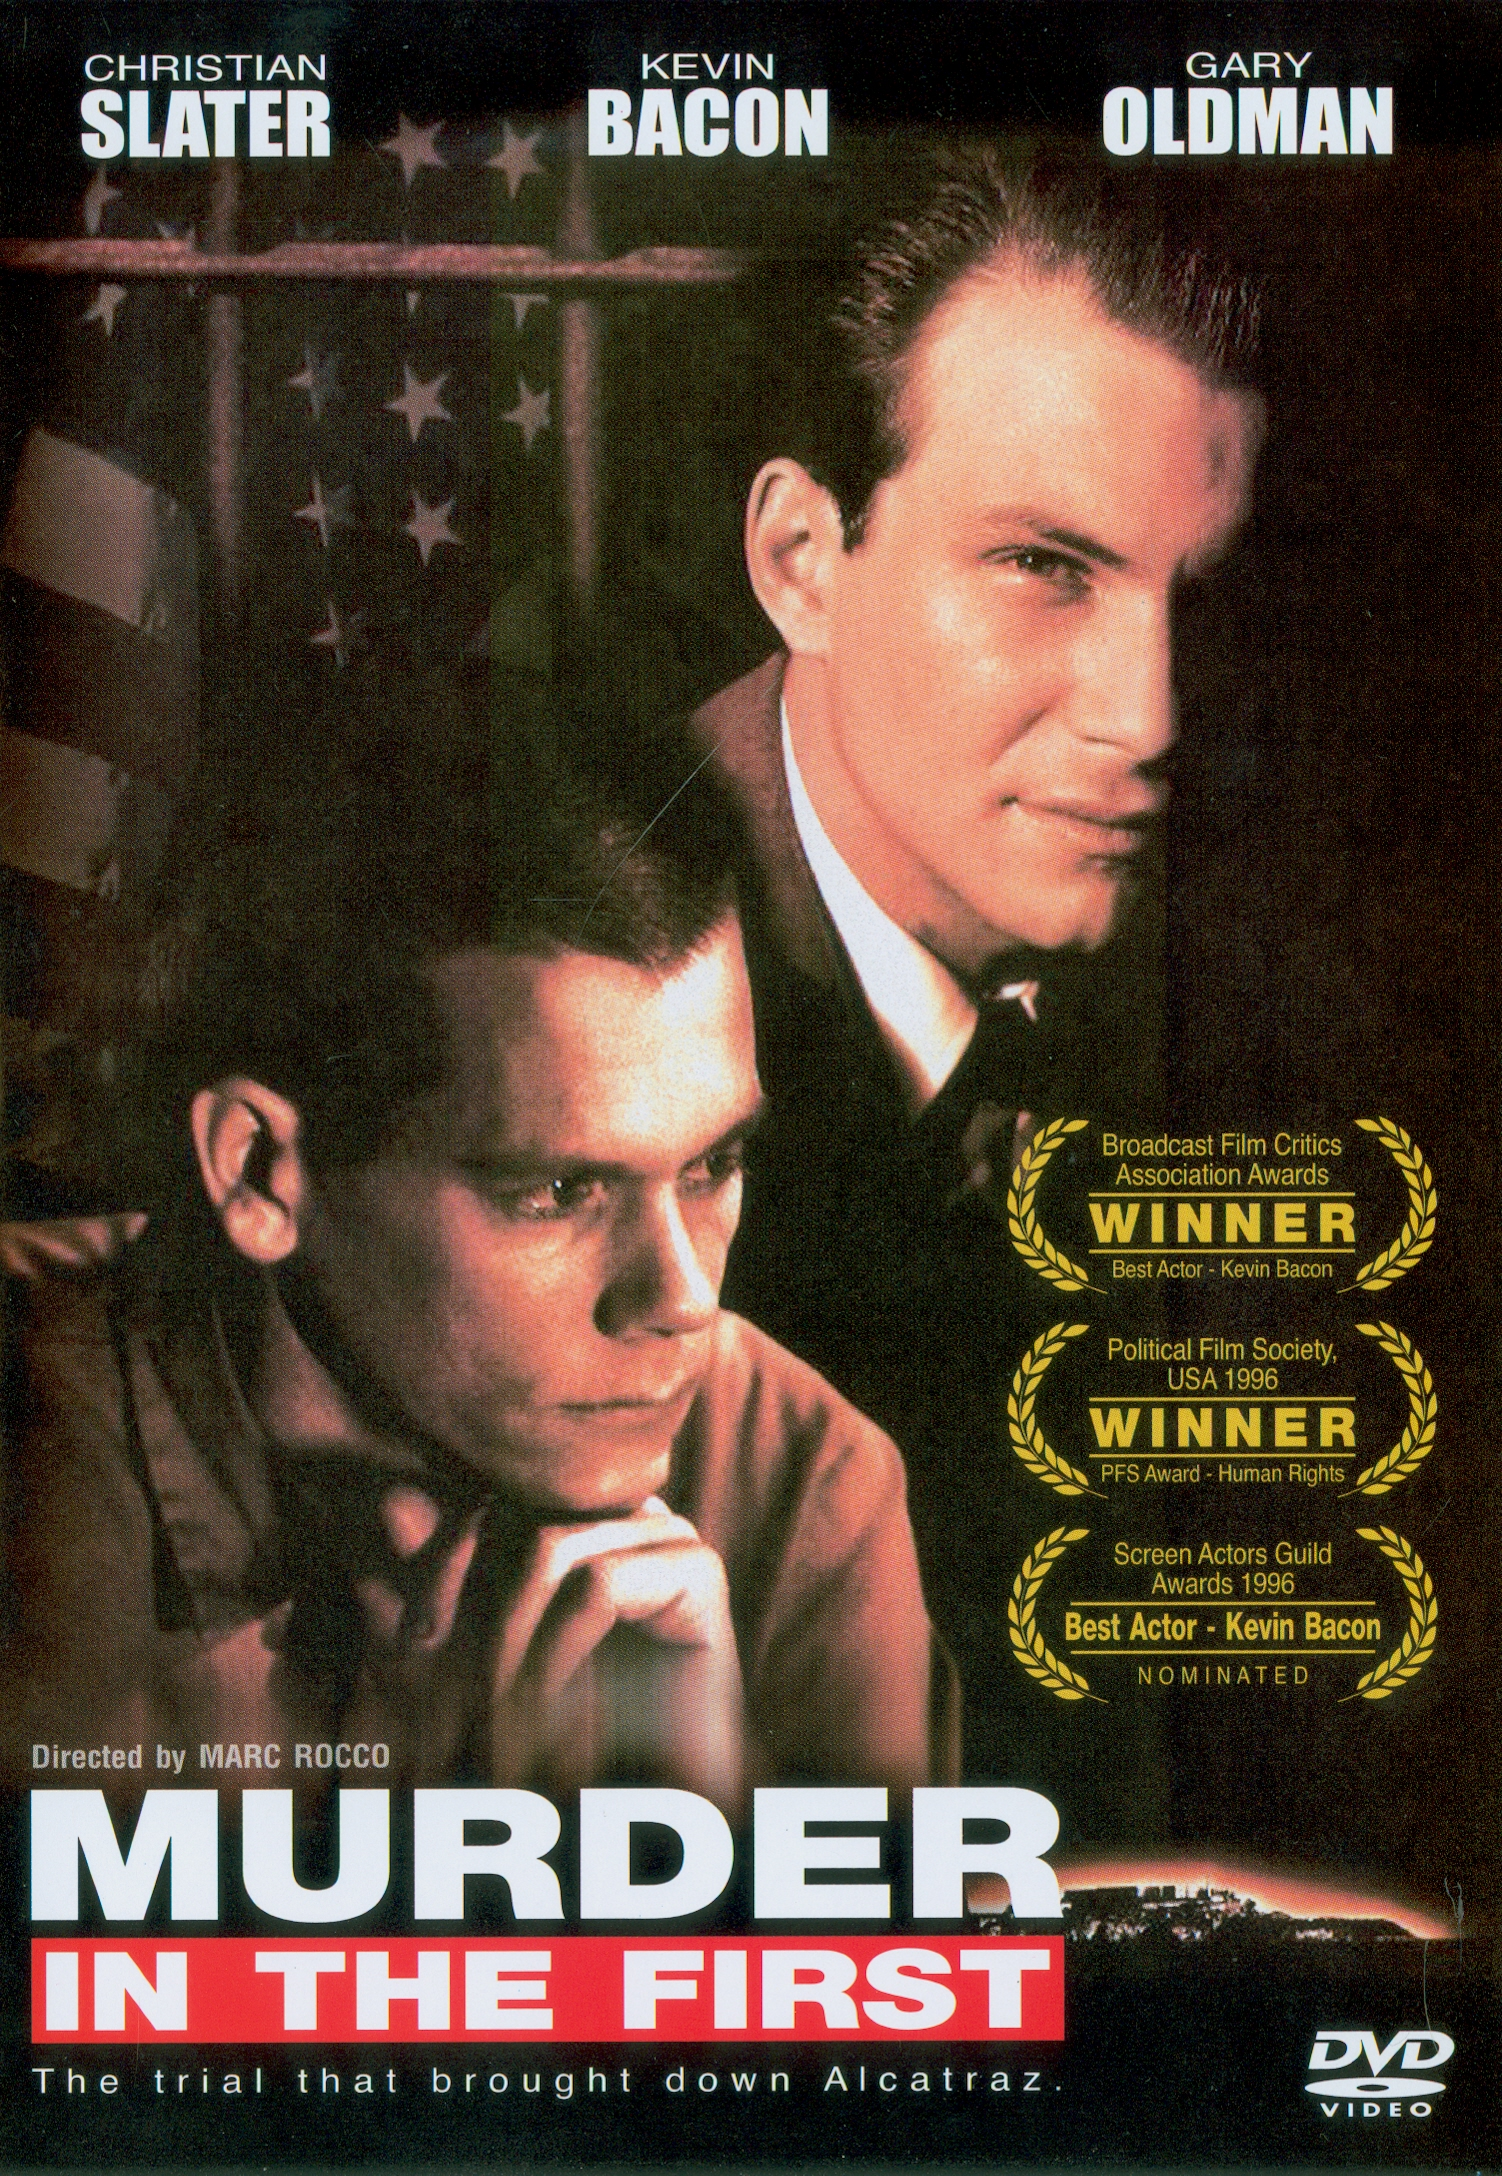 Murder in the first[videorecording] /Warner Bros.presents a Le Studio Canal+ production in association with The Wolper Organization